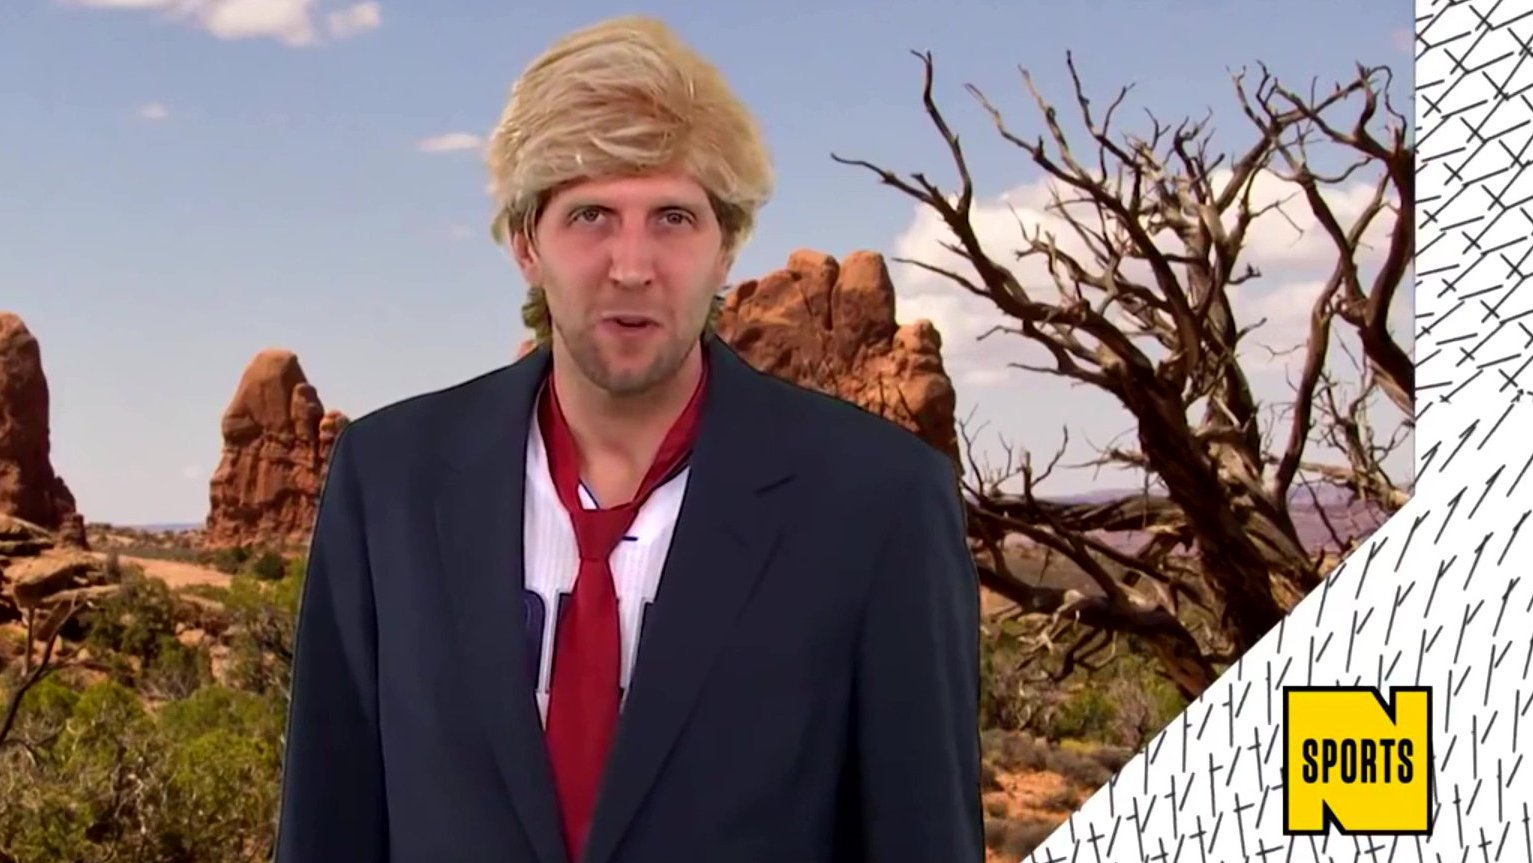 Basketballer Dirk Nowitzki über Donald Trump, 2016 (Video)